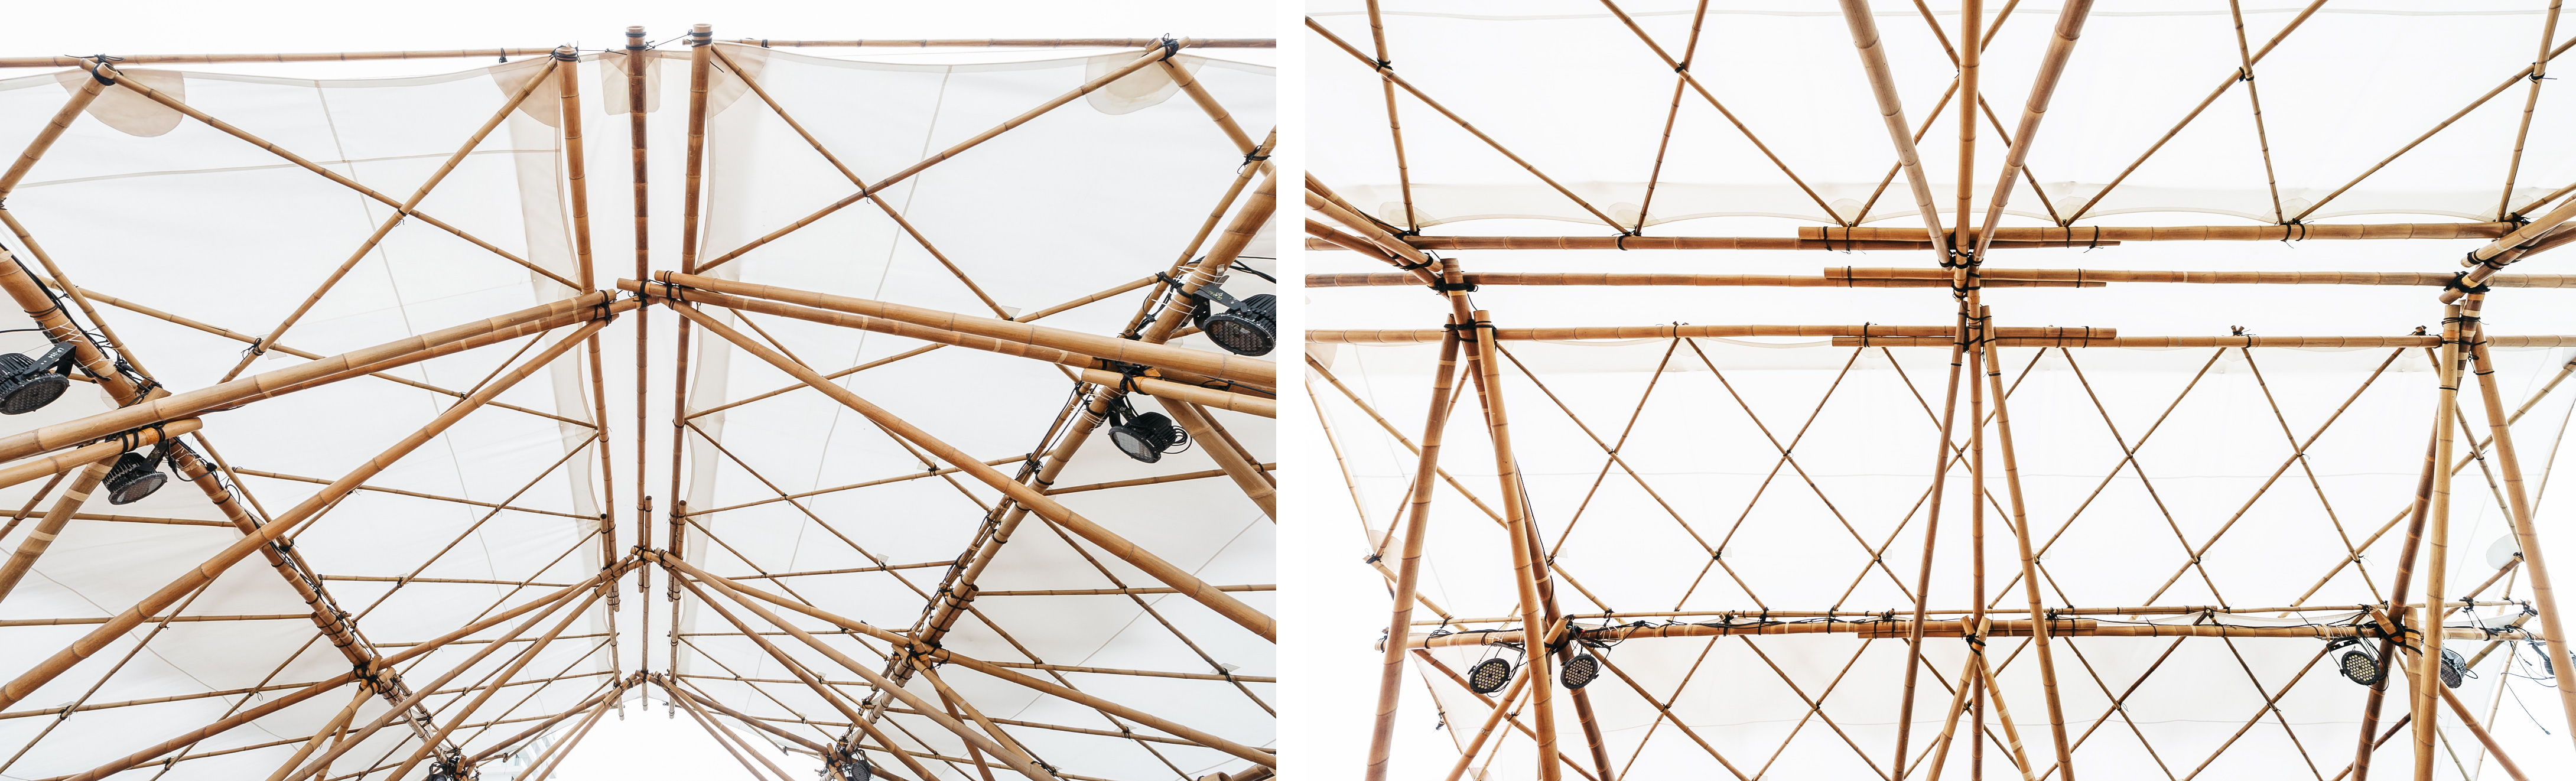 Deployable-Bamboo-Roof-Structure-2.jpg